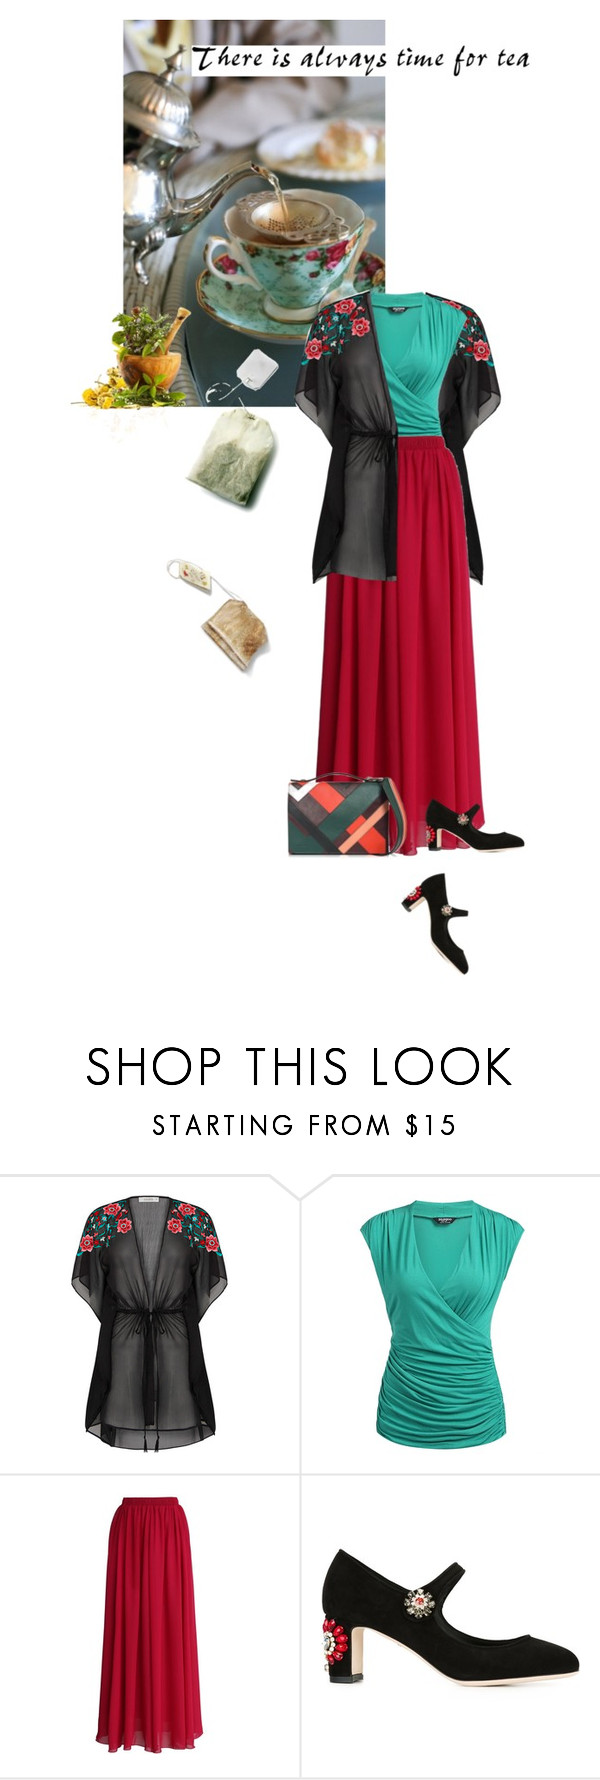 """""""There's always time for tea"""" by noconfessions ❤ liked on Polyvore featuring Chicwish, Dolce&Gabbana and Emilio Pucci"""